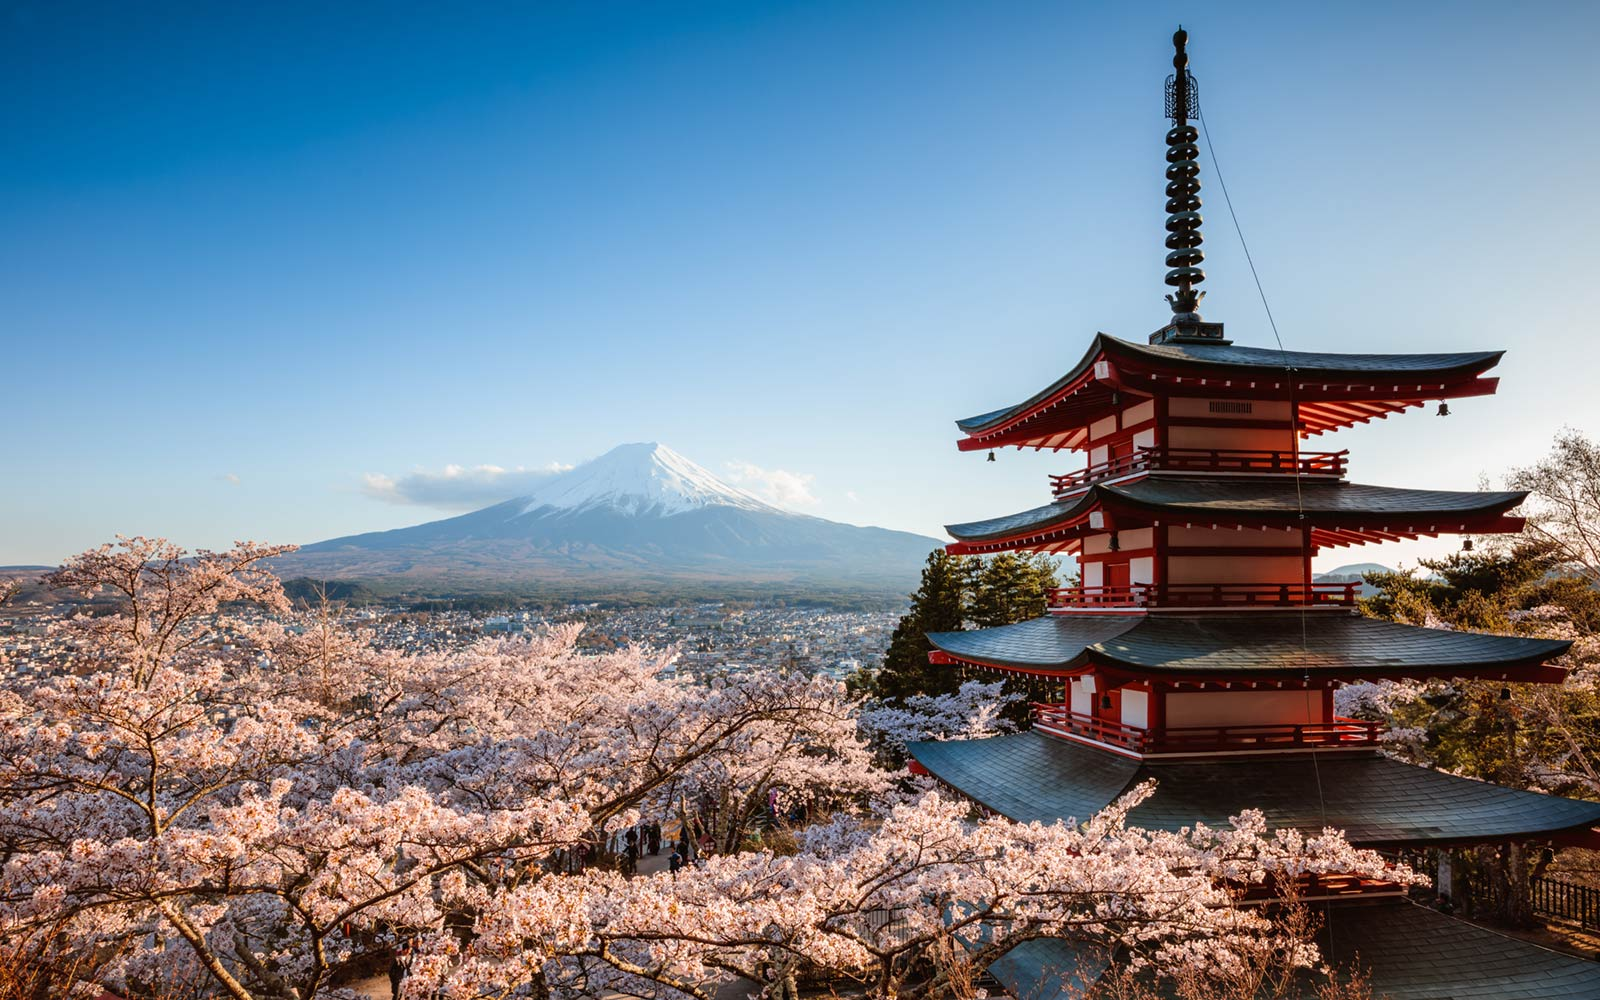 Cherry Blooms at Chureito Pagoda and Mt. Fuji in Japan